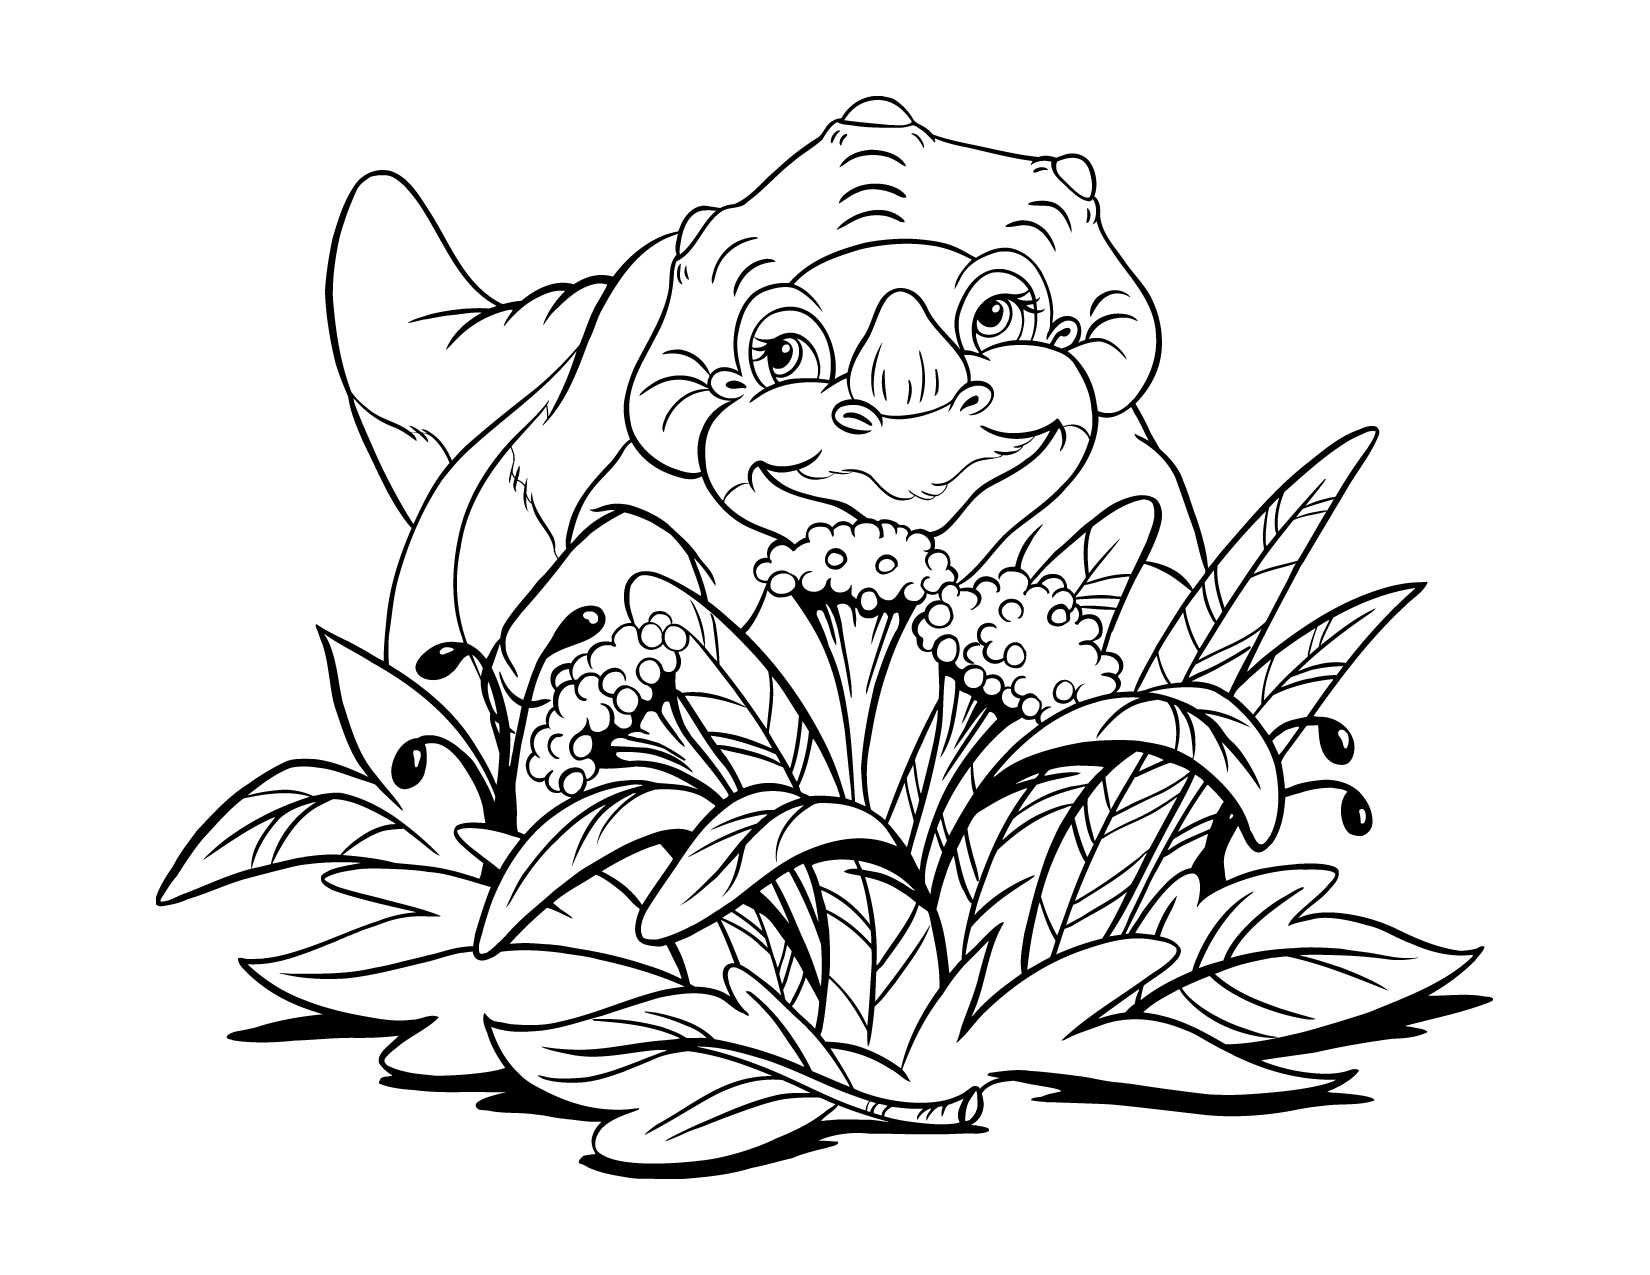 Free Dinosaur Coloring Pages For Kids 396